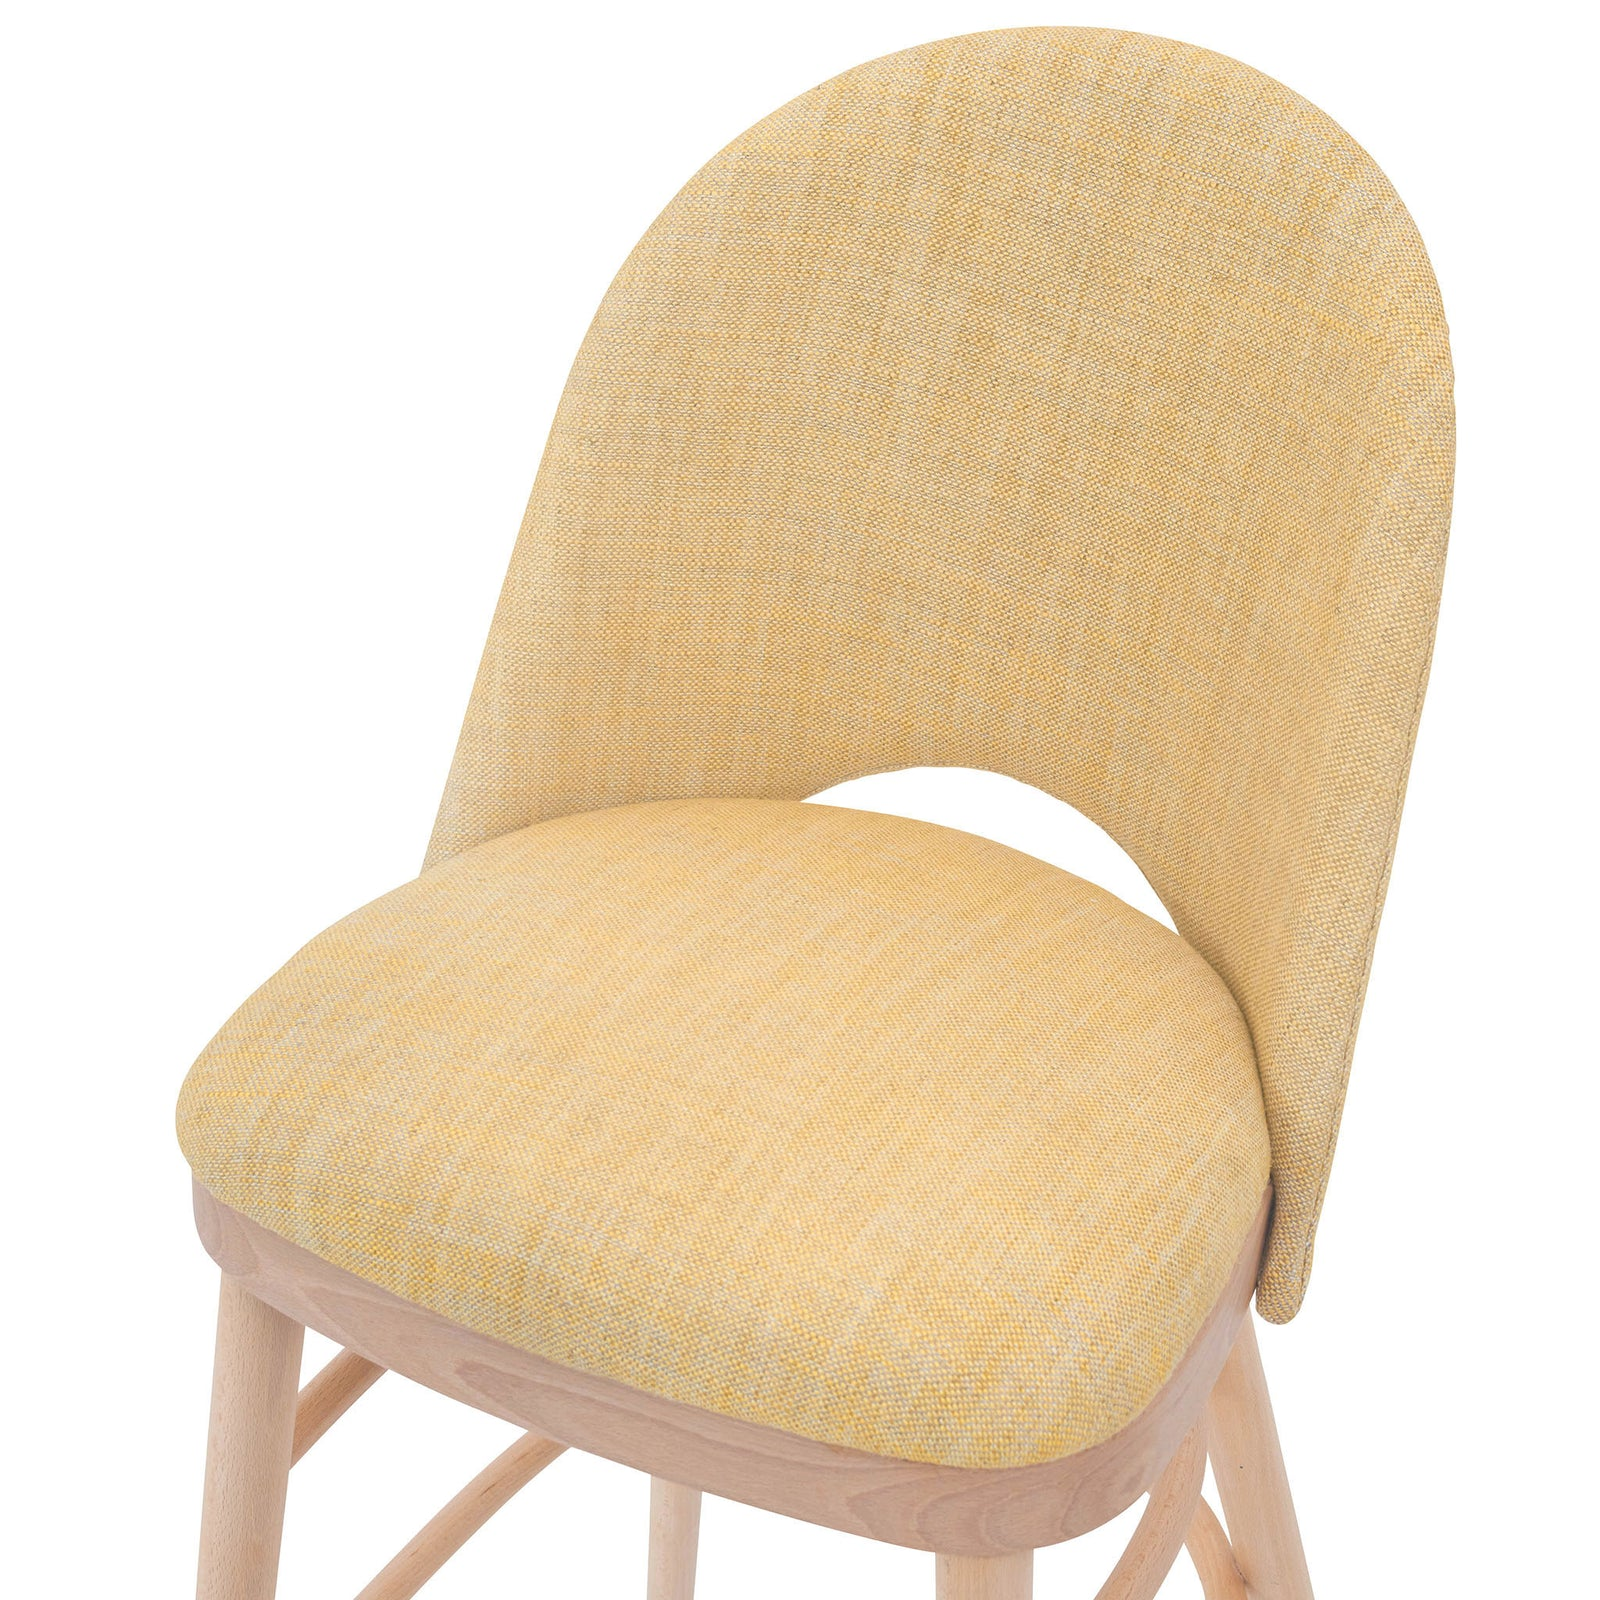 Stylish Ella Bar Stool in the Textured Linen Old Guilding from Fermoie